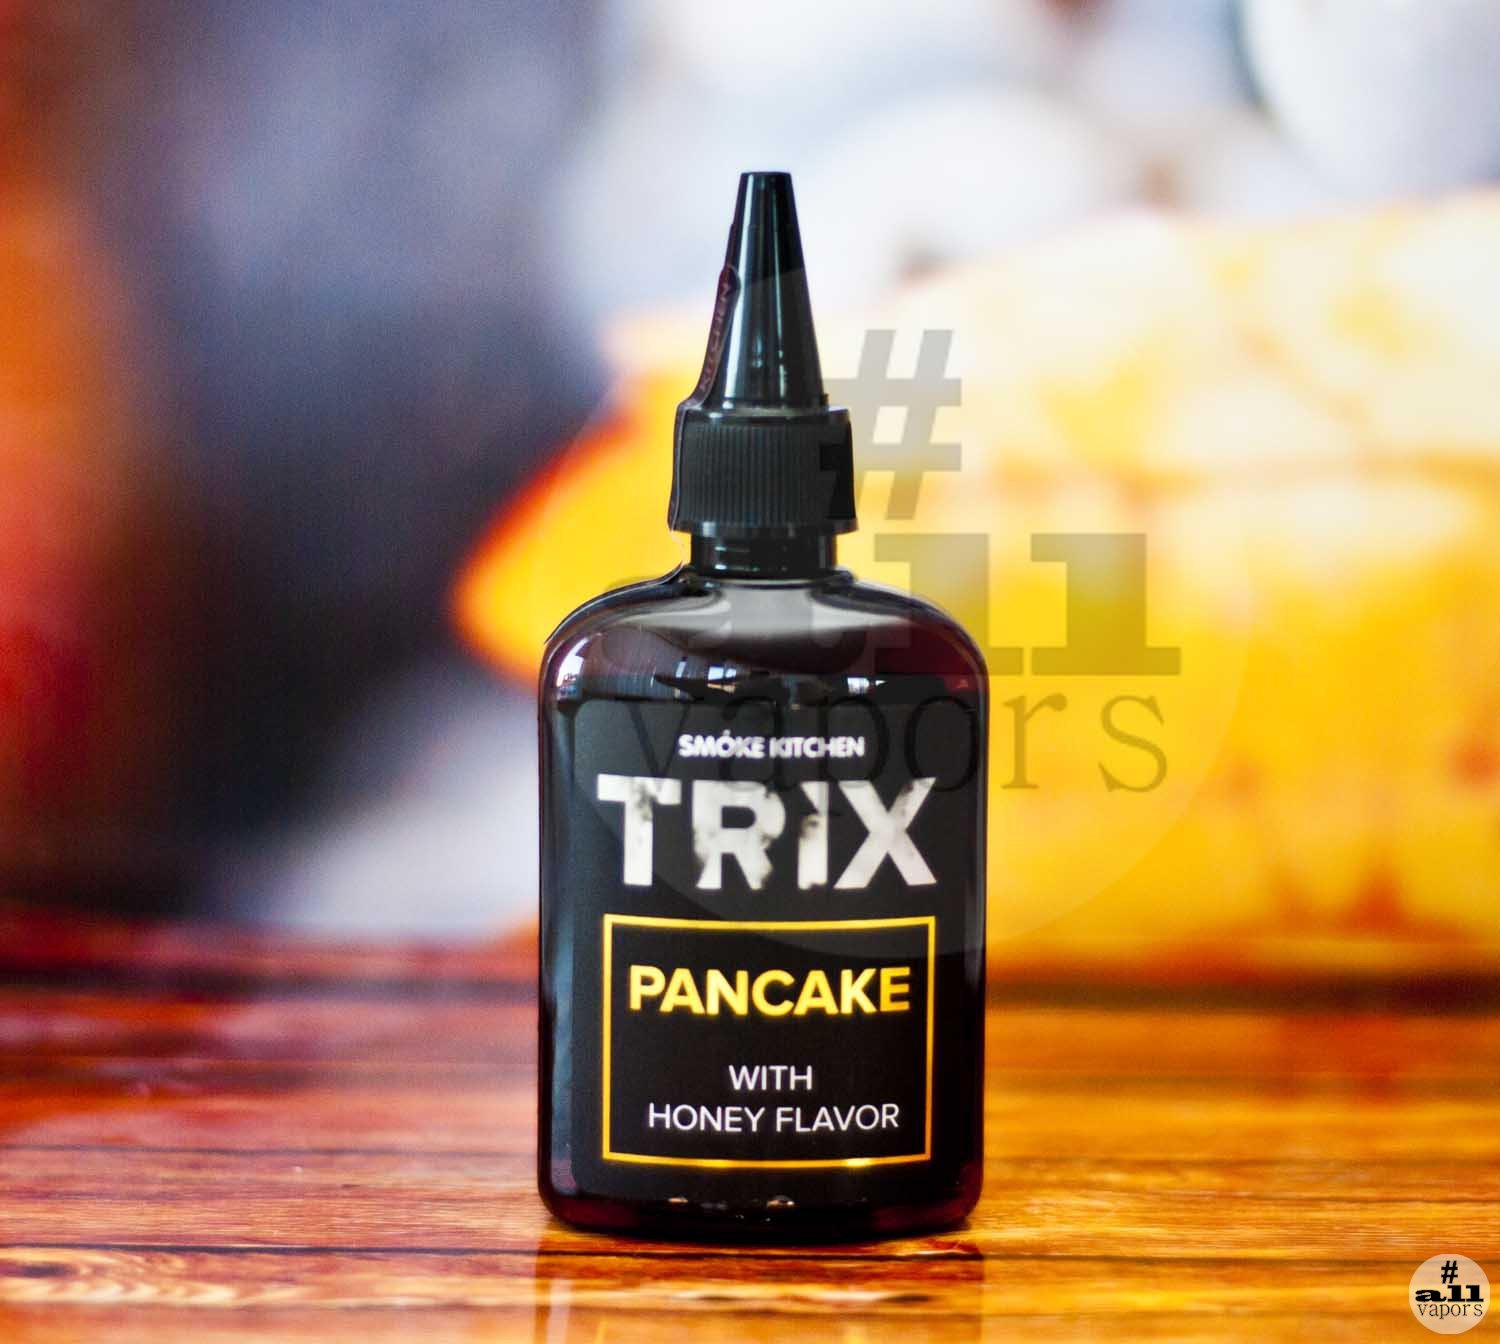 TRIX Pancake от SMOKE KITCHEN 100 мл